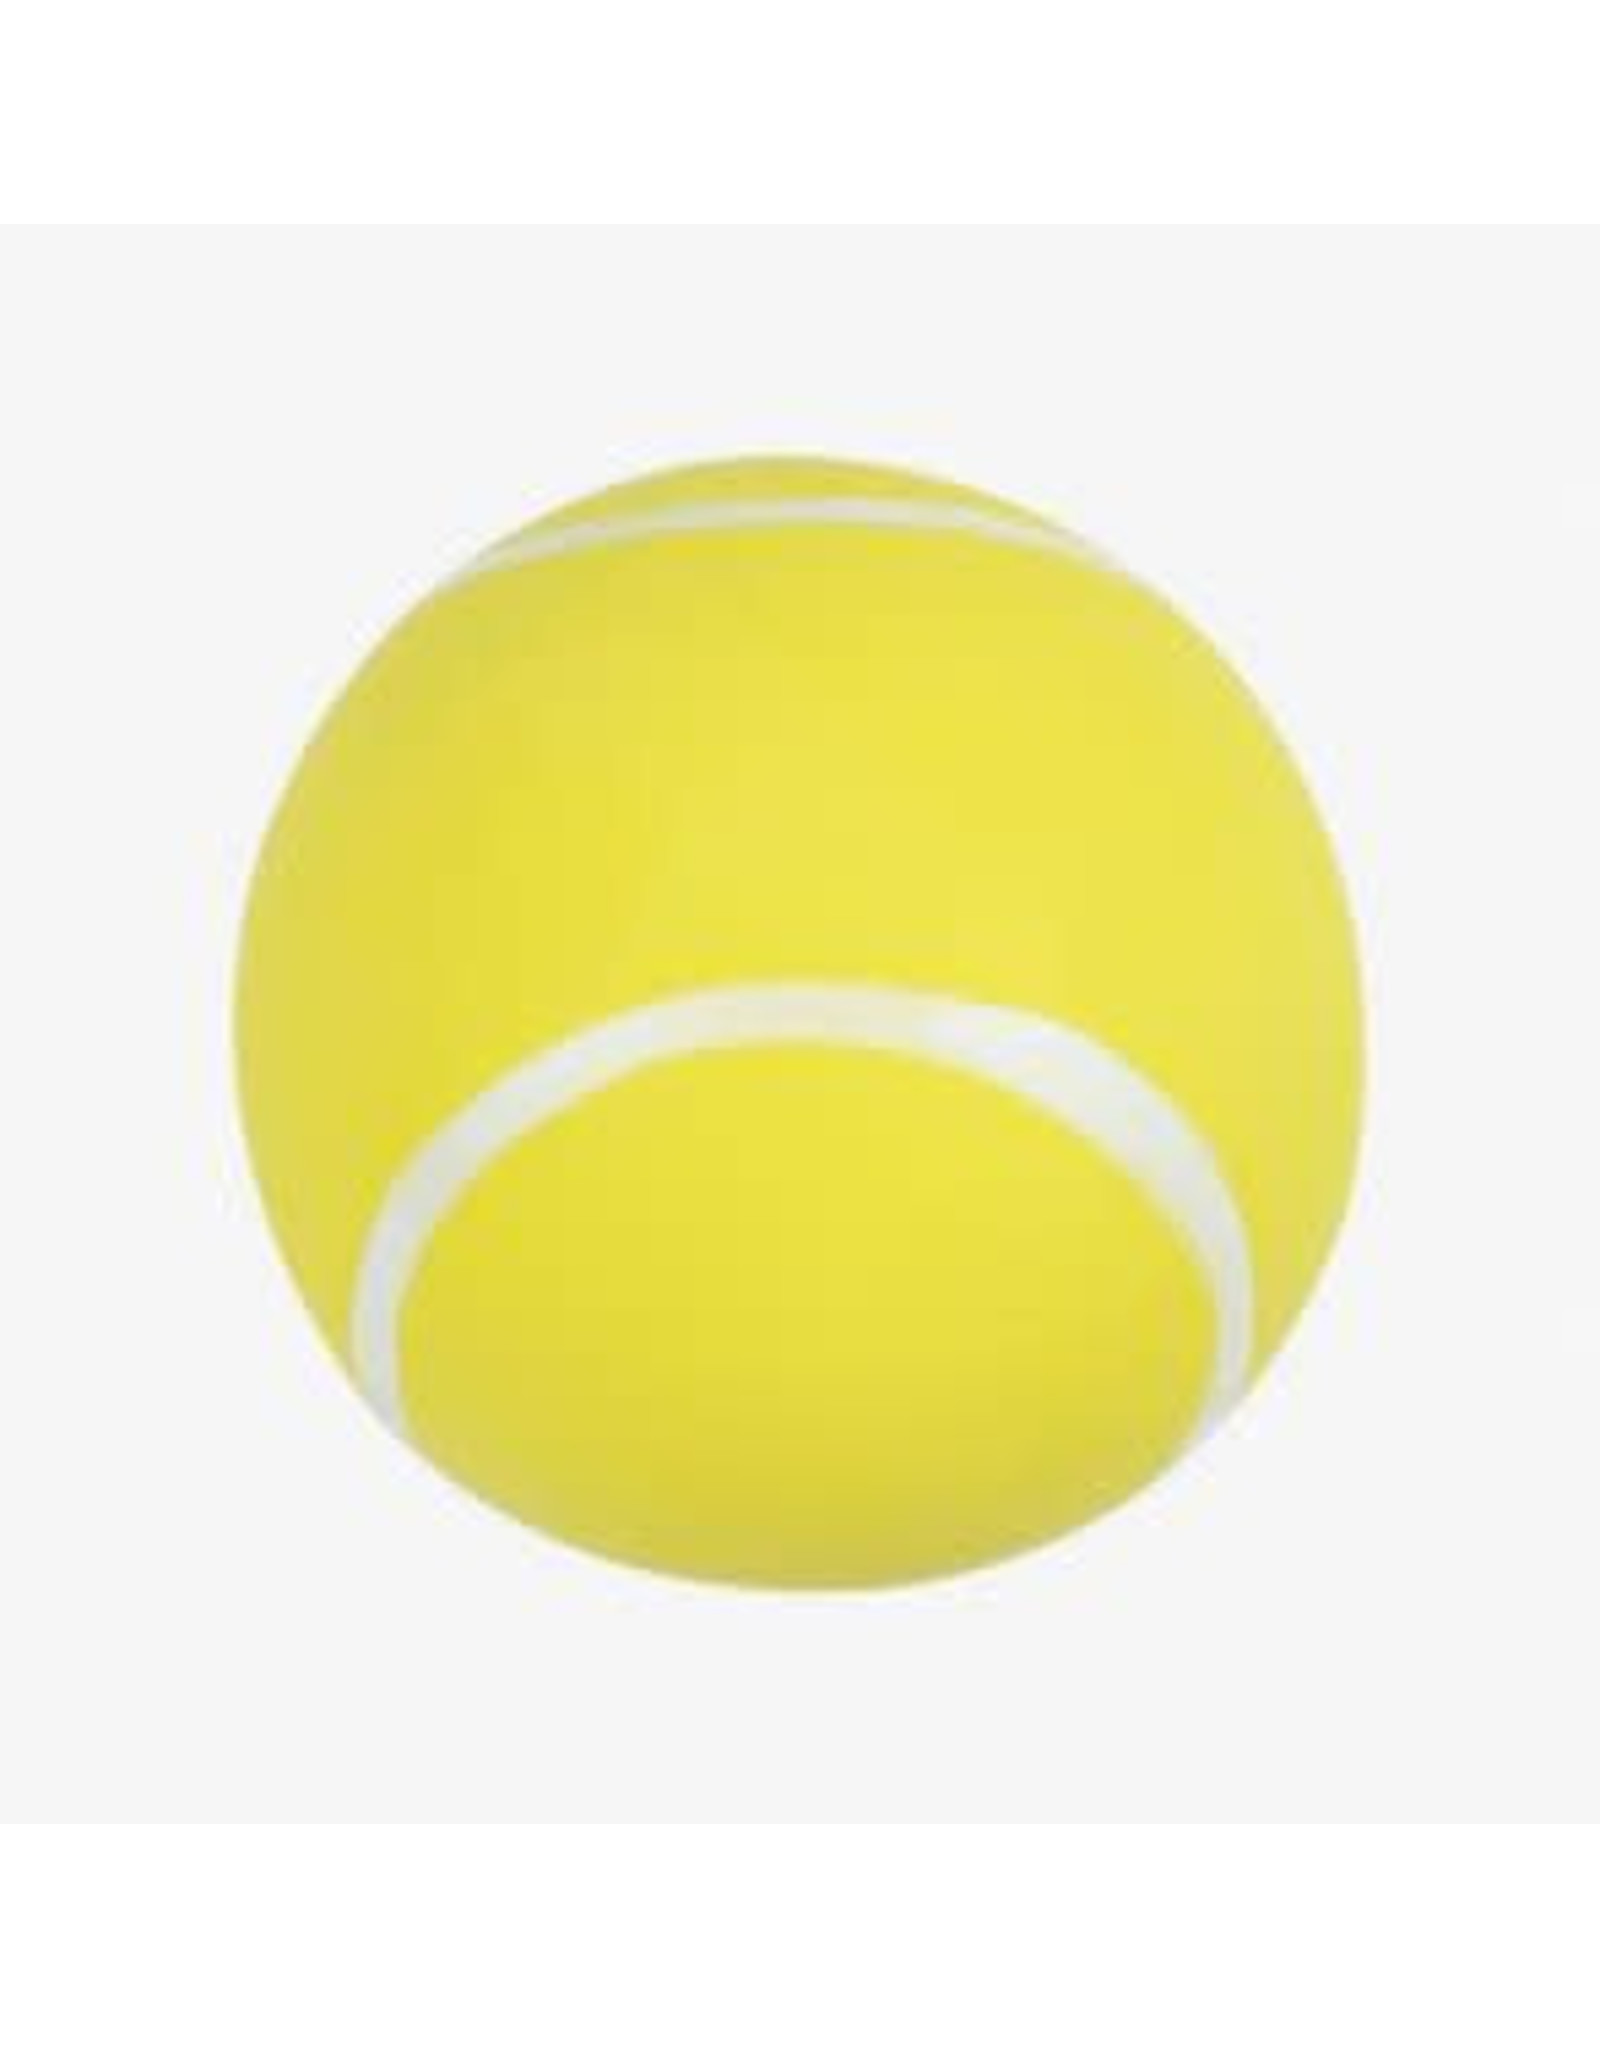 stress ball in the shape of a tennis ball